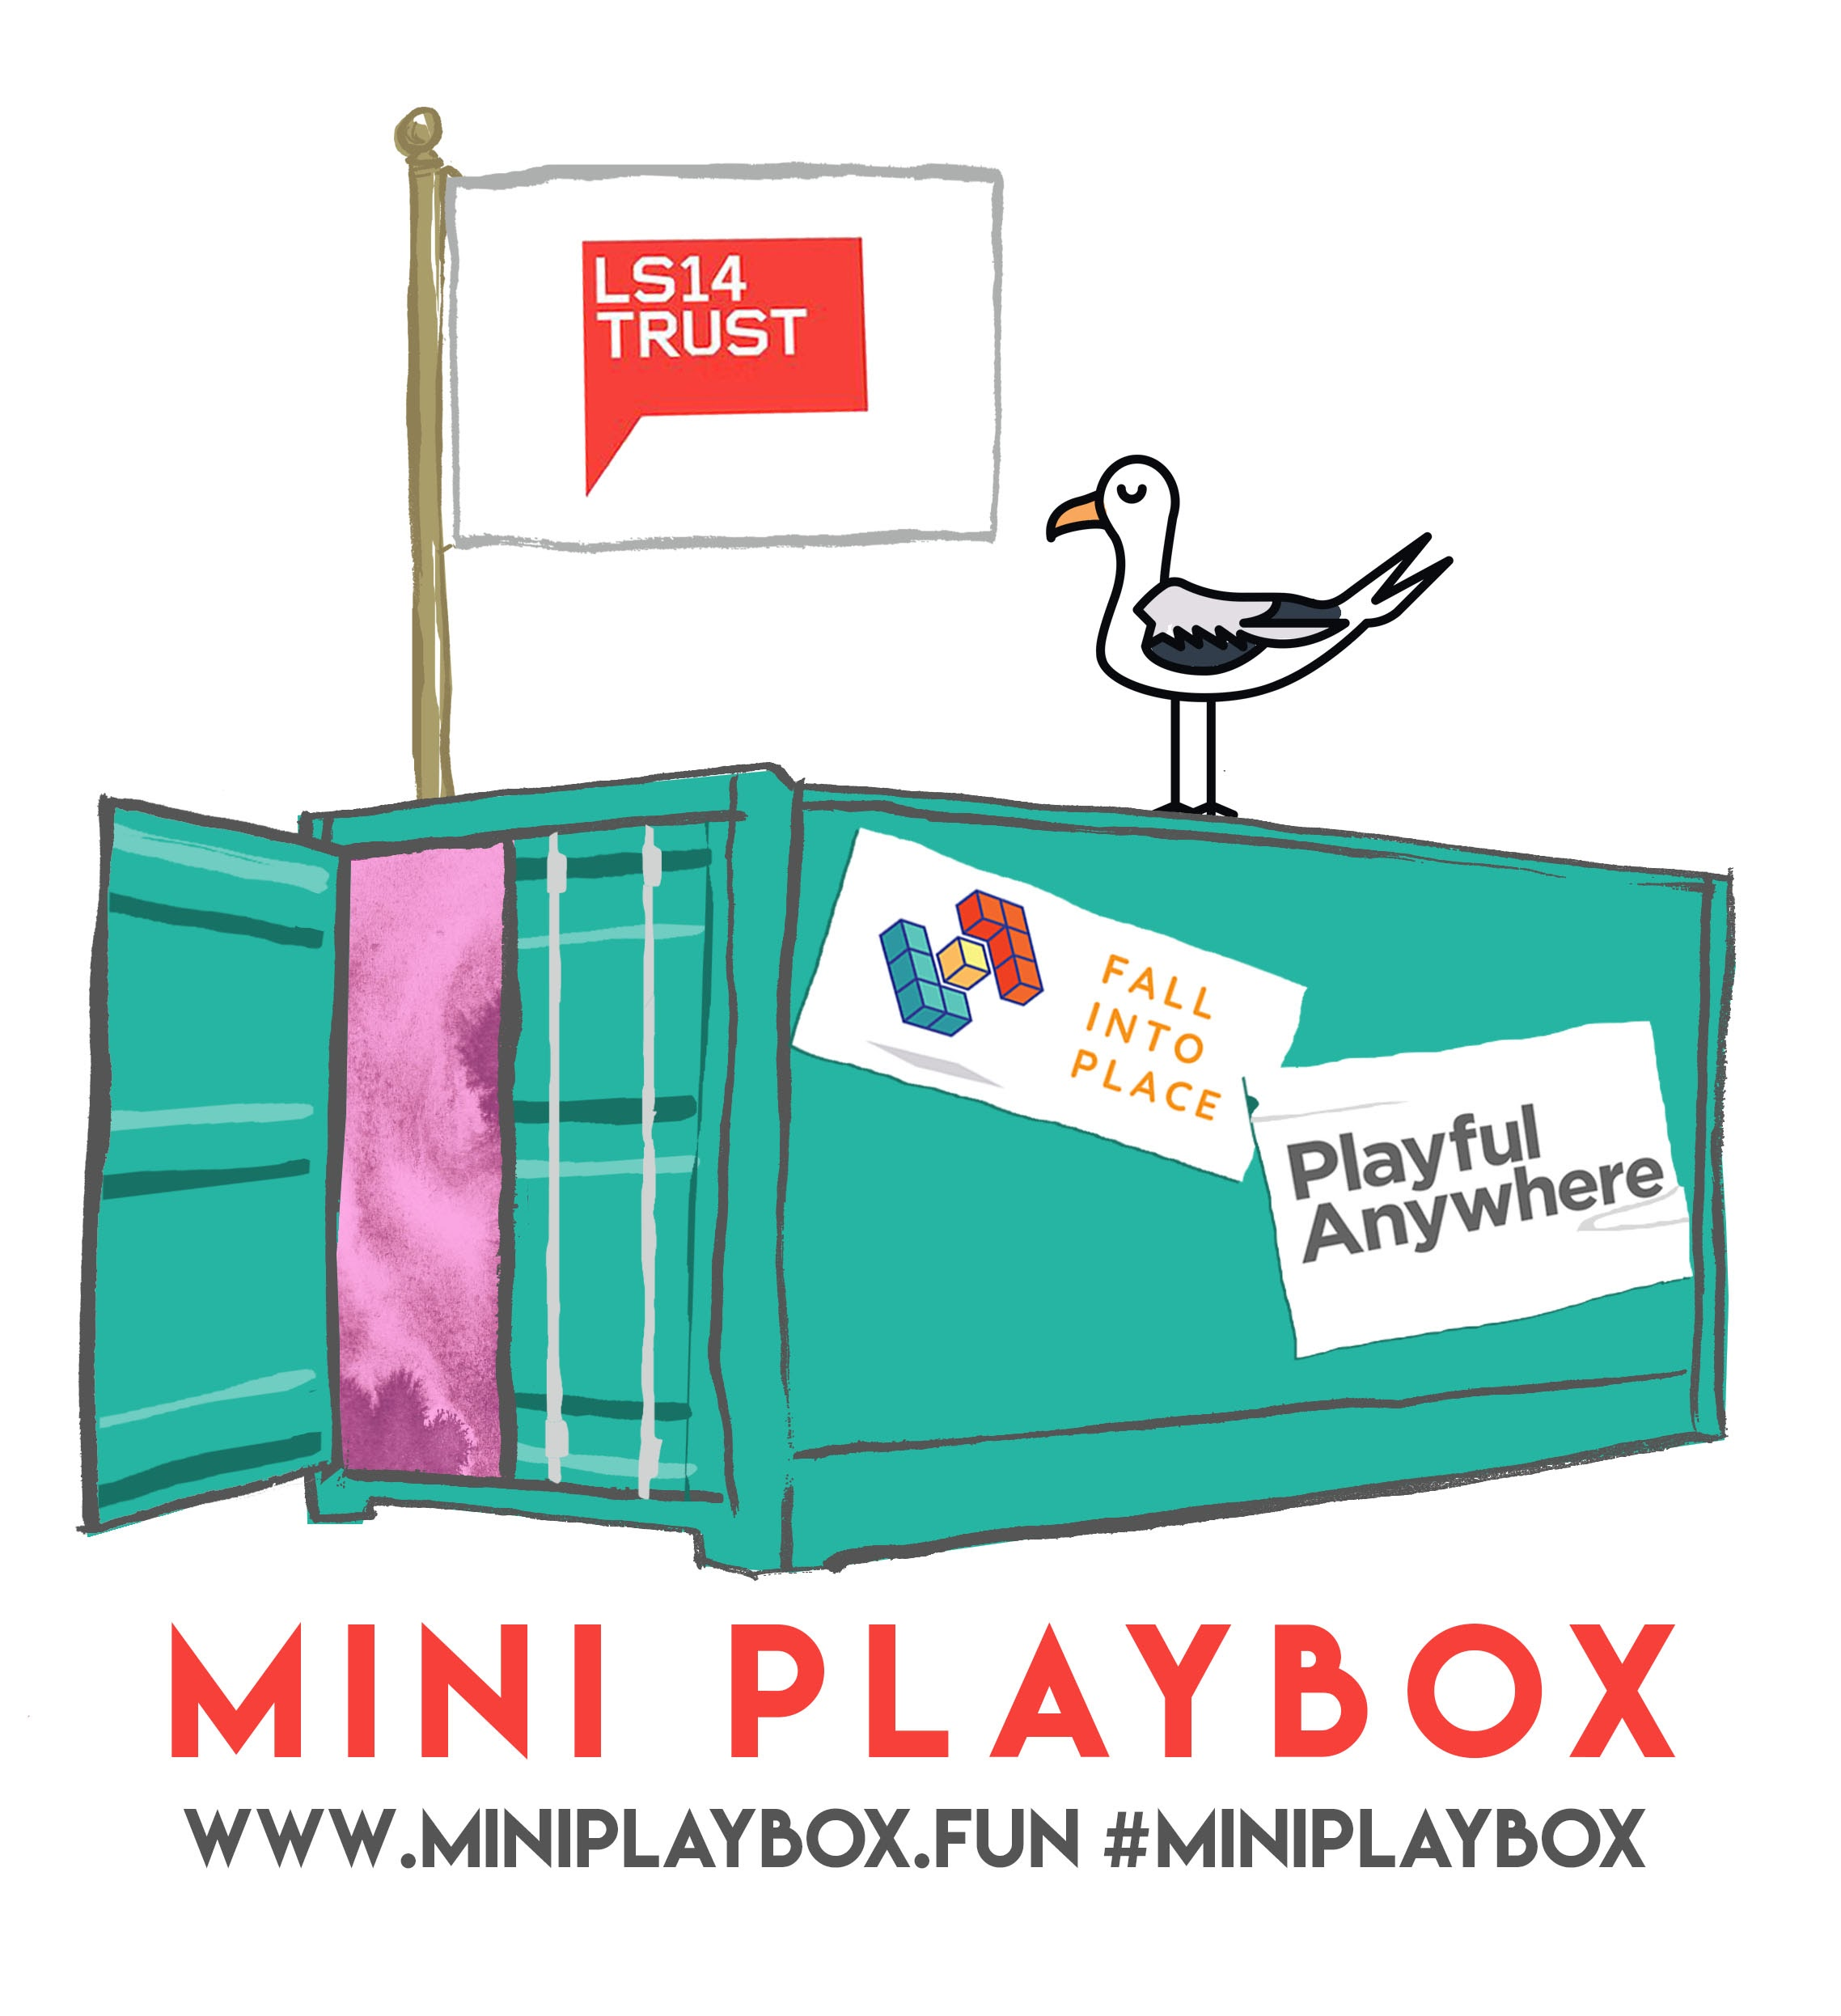 mini playbox armley